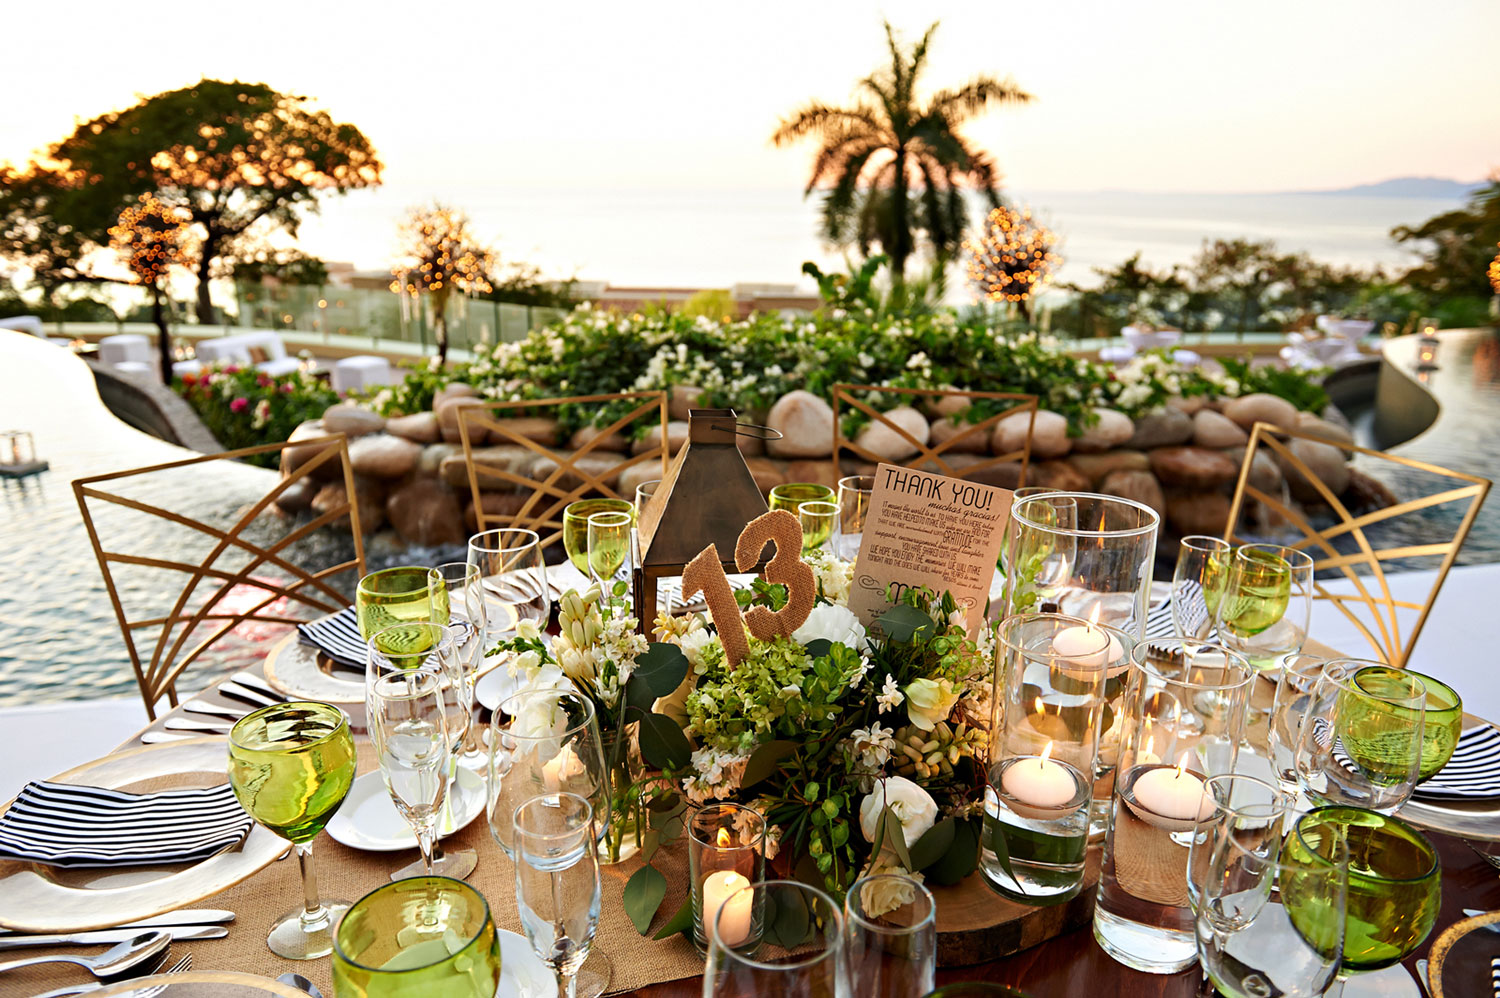 Destination wedding in puerto vallarta mexico palm trees ocean